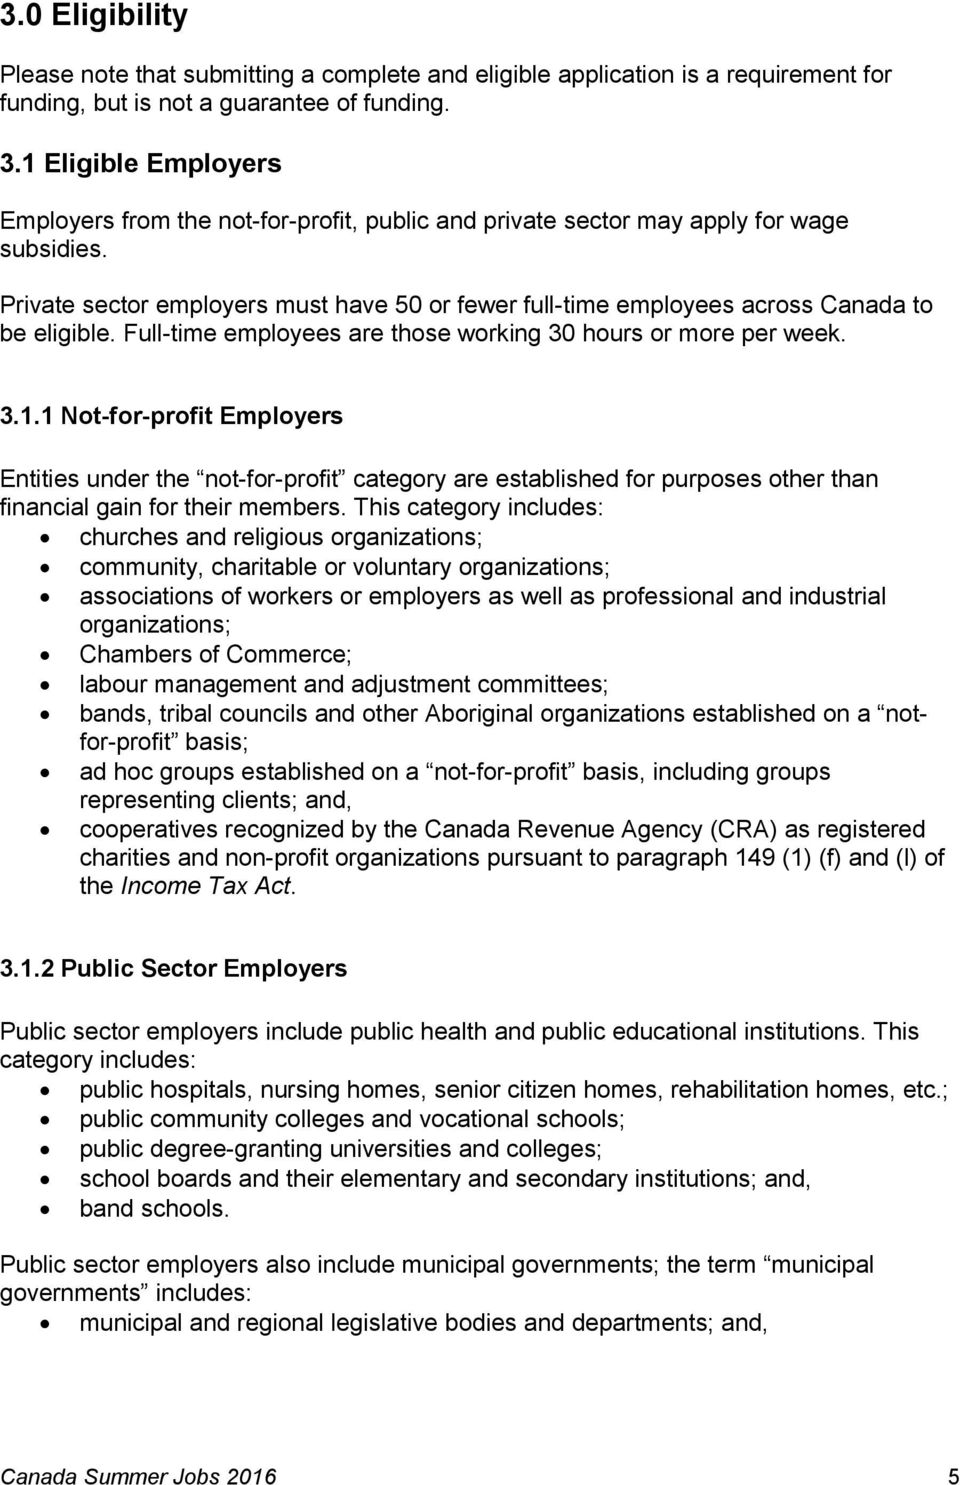 Private sector employers must have 50 or fewer full-time employees across Canada to be eligible. Full-time employees are those working 30 hours or more per week. 3.1.